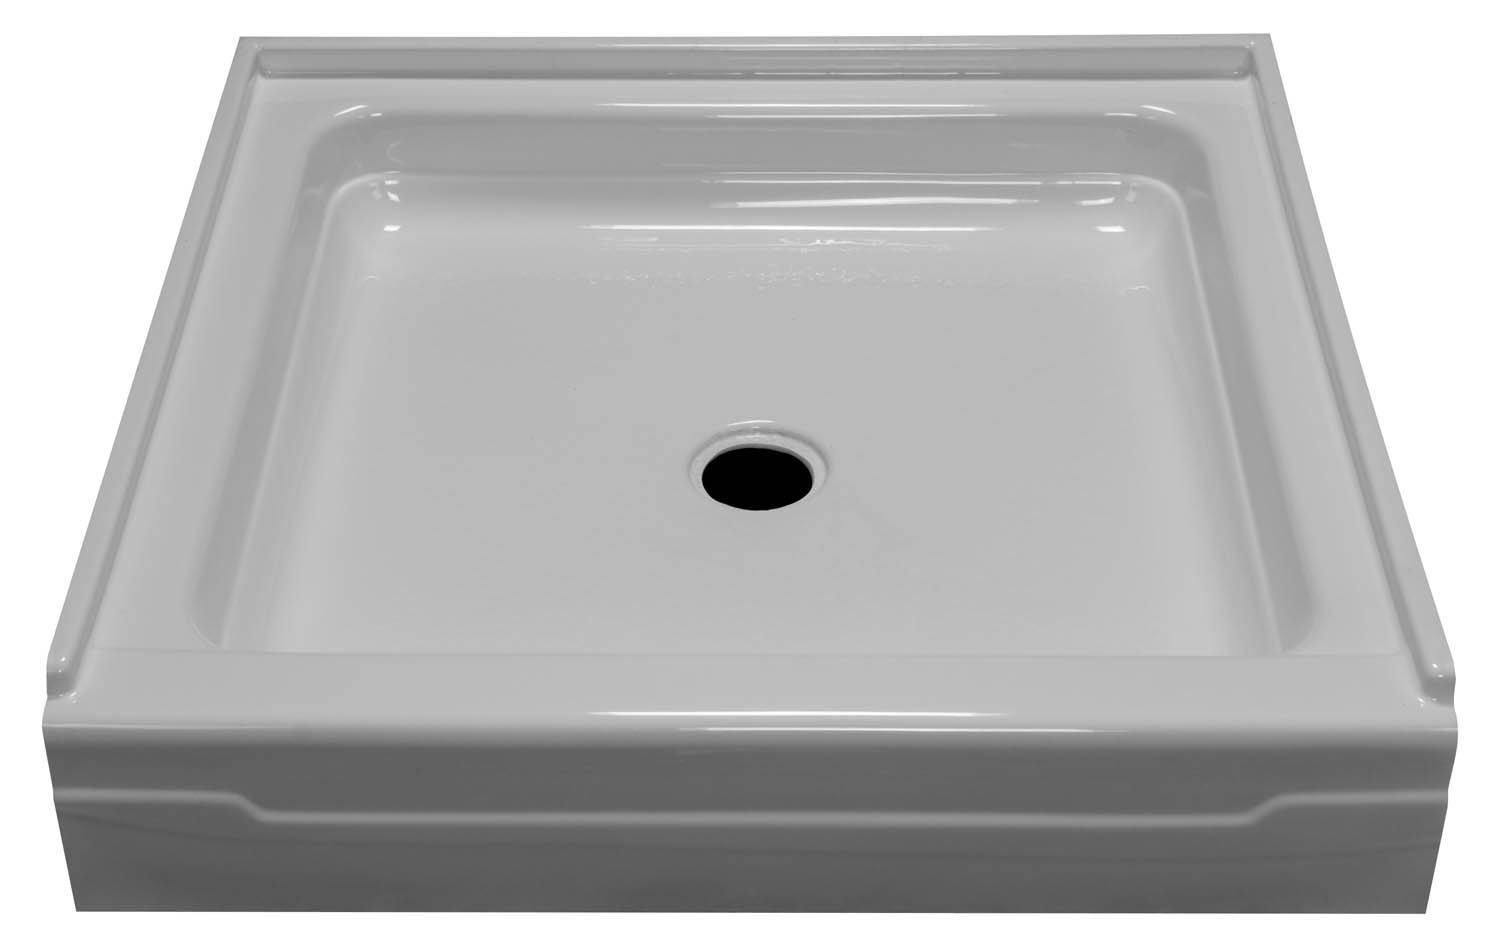 High Quality Bathtubs Whirlpool Jacuzzi Shower Pan